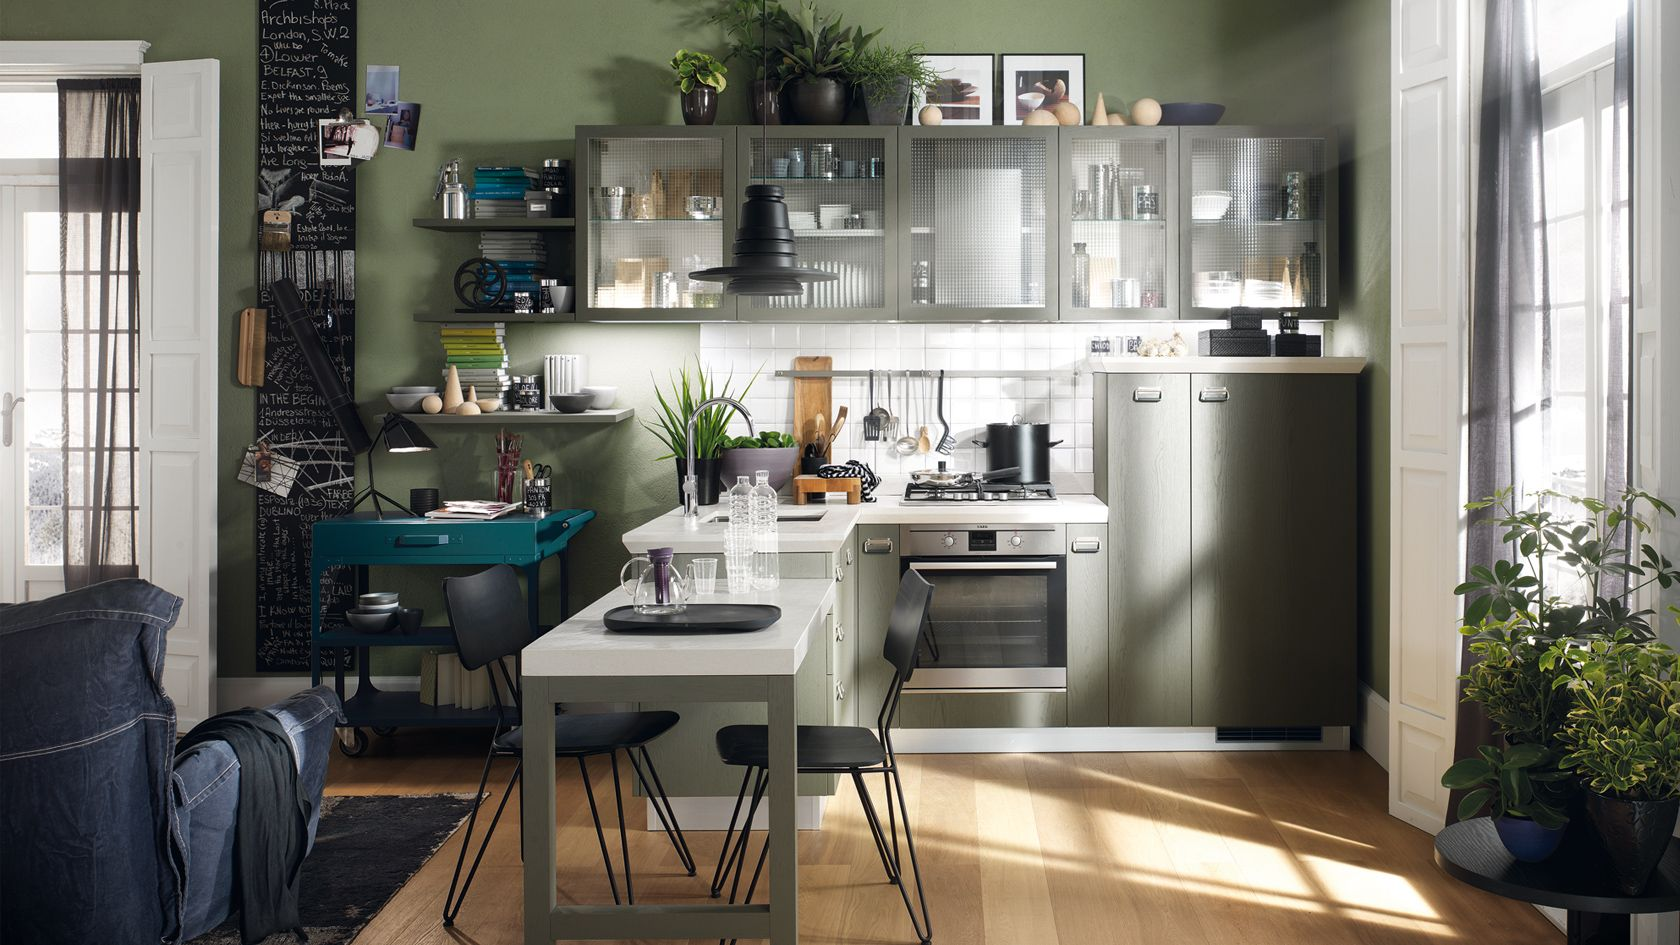 Cucina Diesel Social Kitchen Scavolini | kitchens מטבחים ...